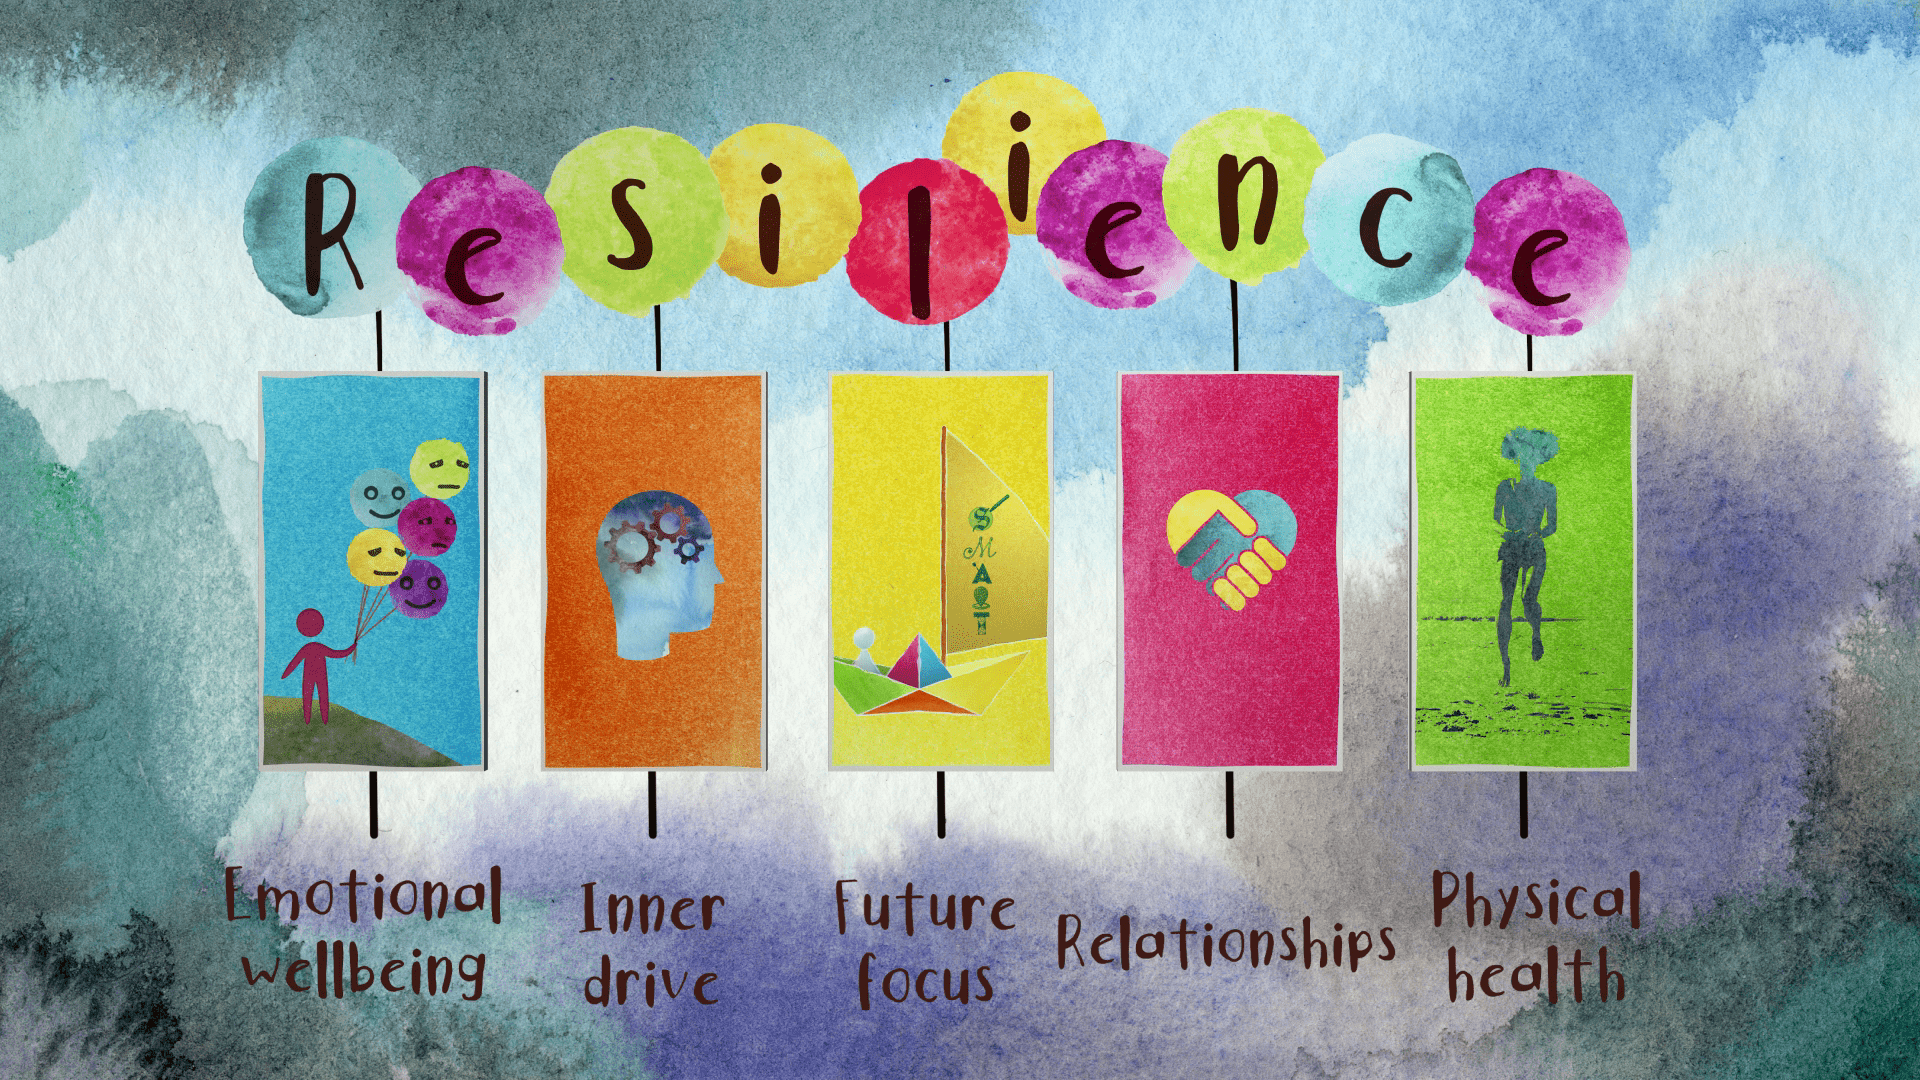 5 pillars to resilience